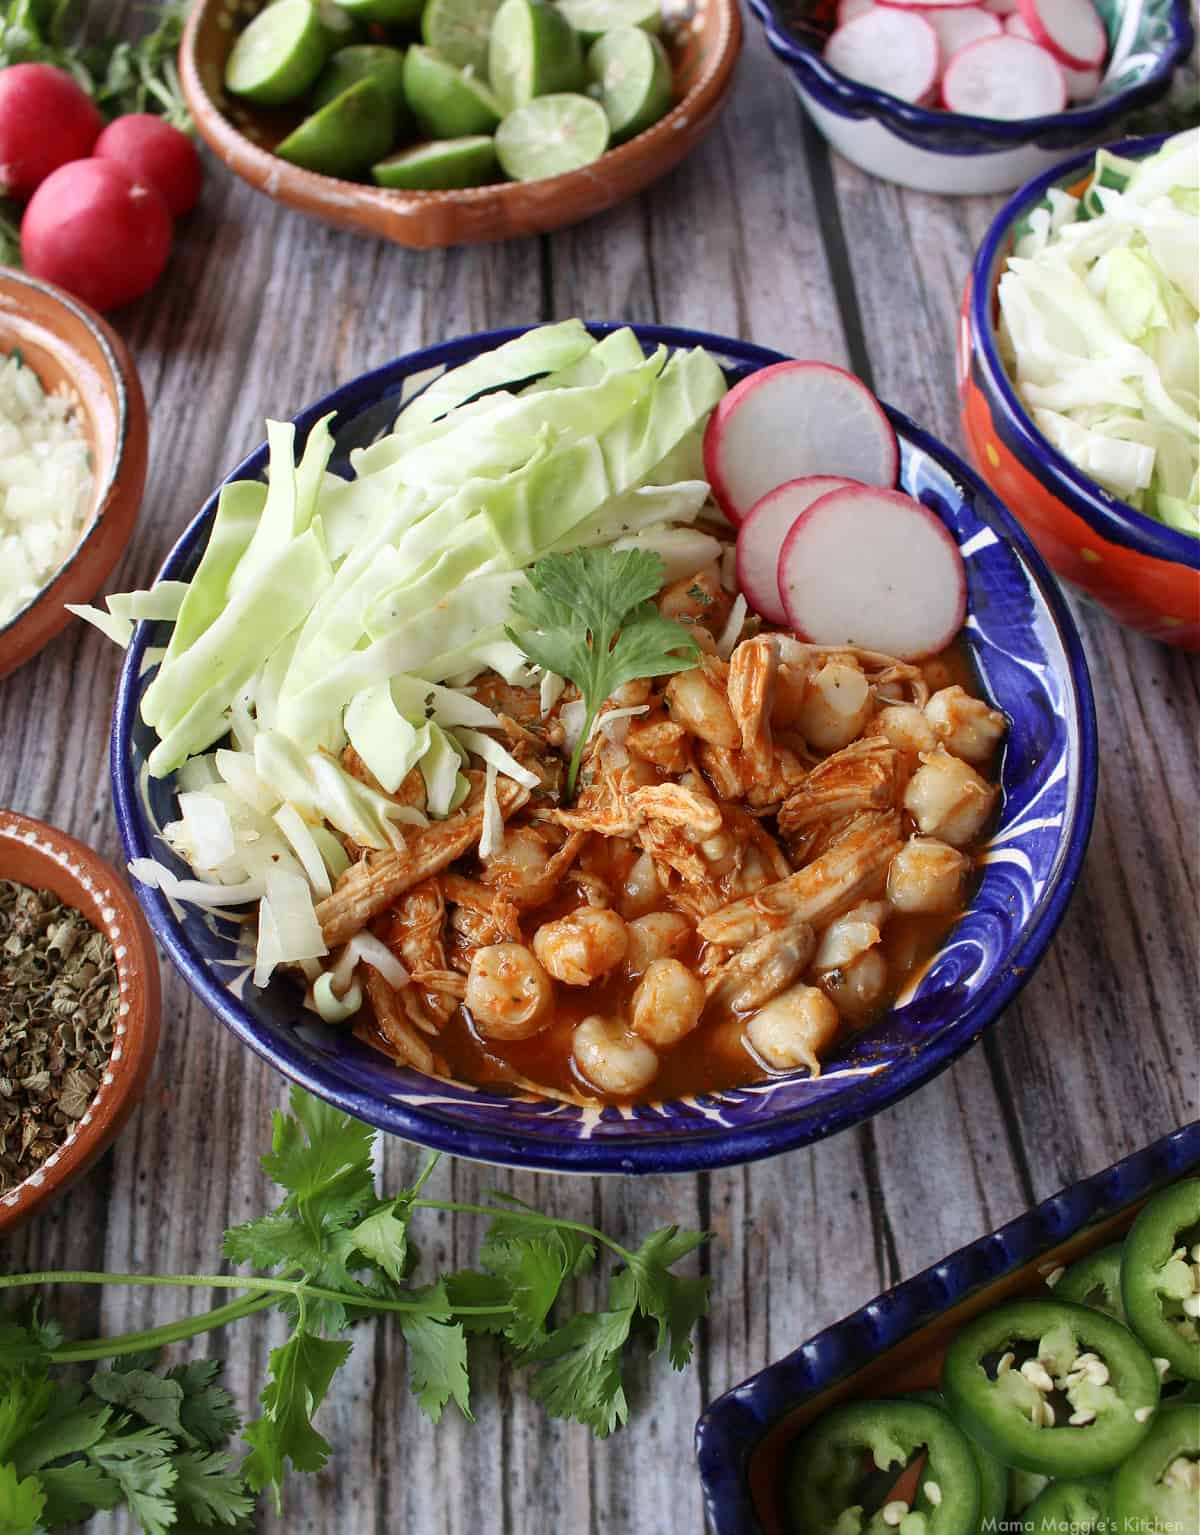 Red Chicken Pozole served in a decorative blue plate and surrounded by the toppings.